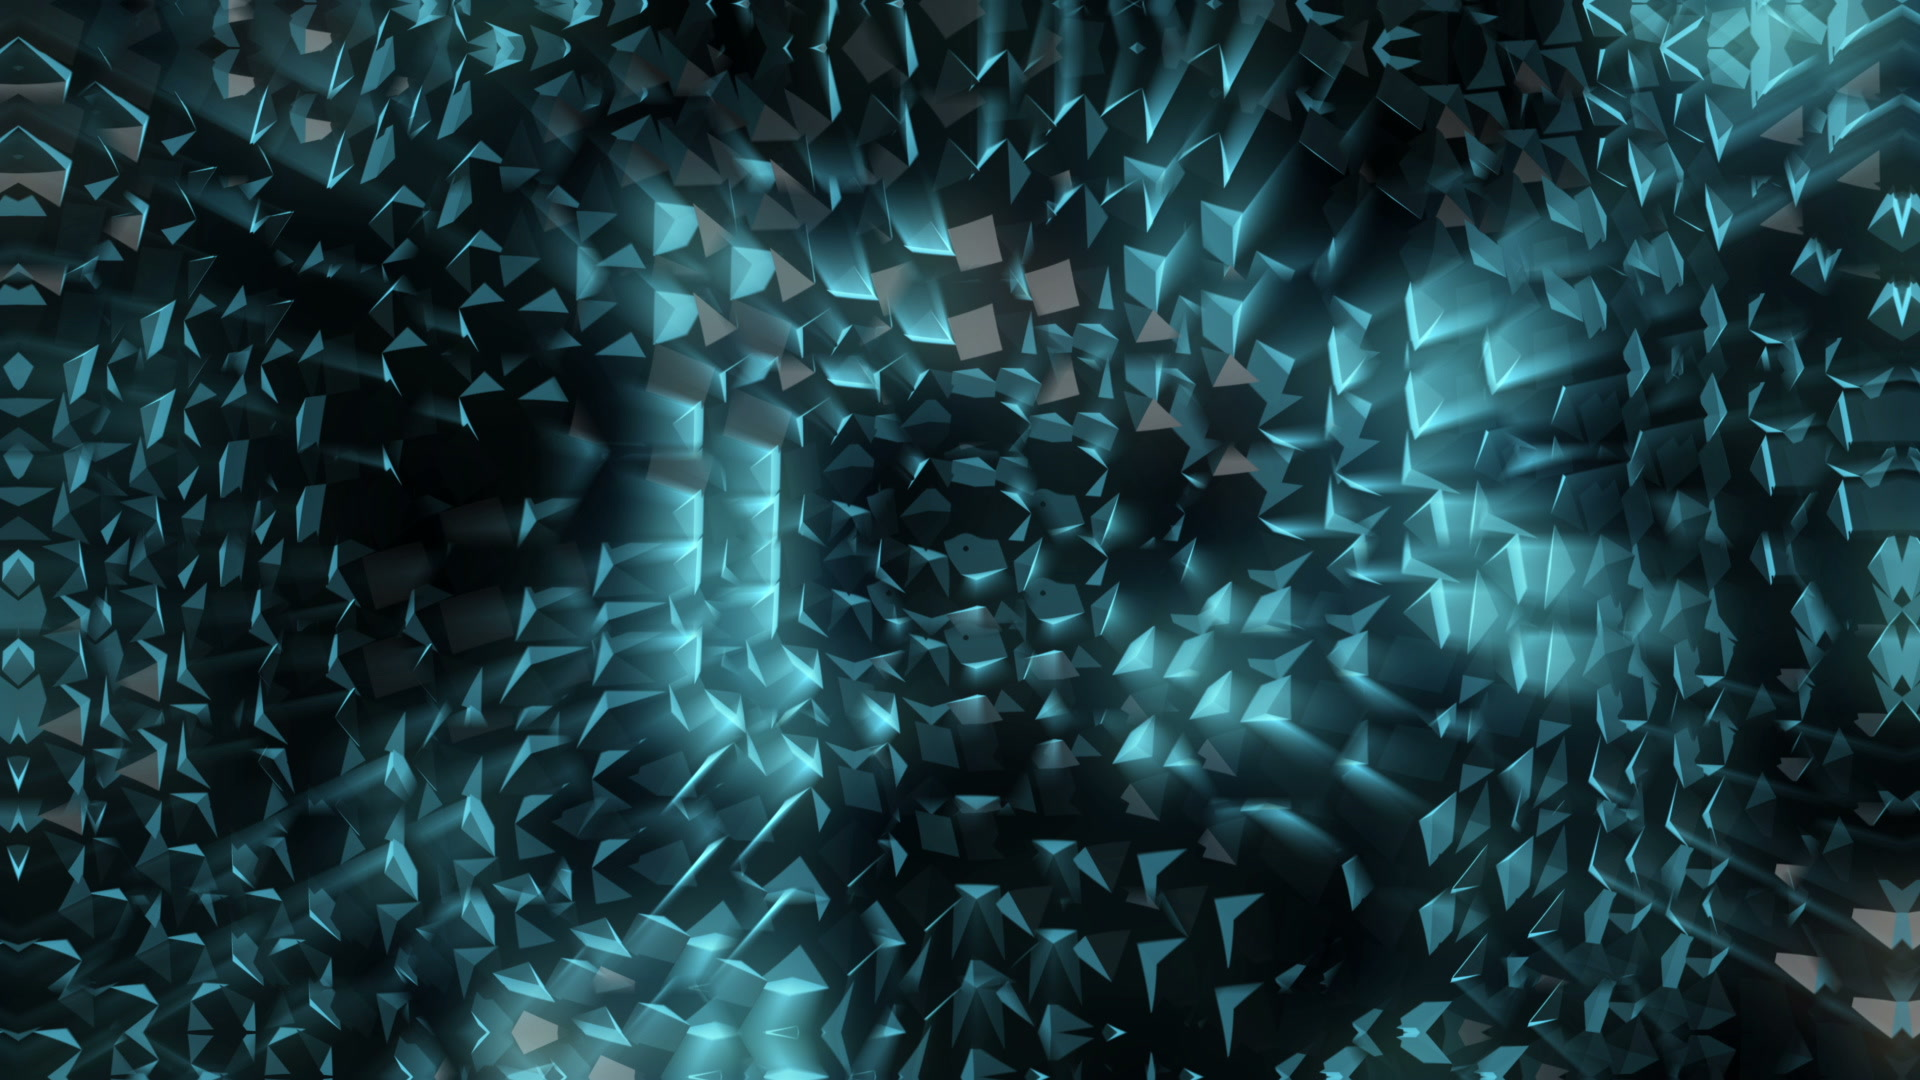 vj video background Kolchuga-Snake-Full-HD-Vj-Loop-LIMEART_003